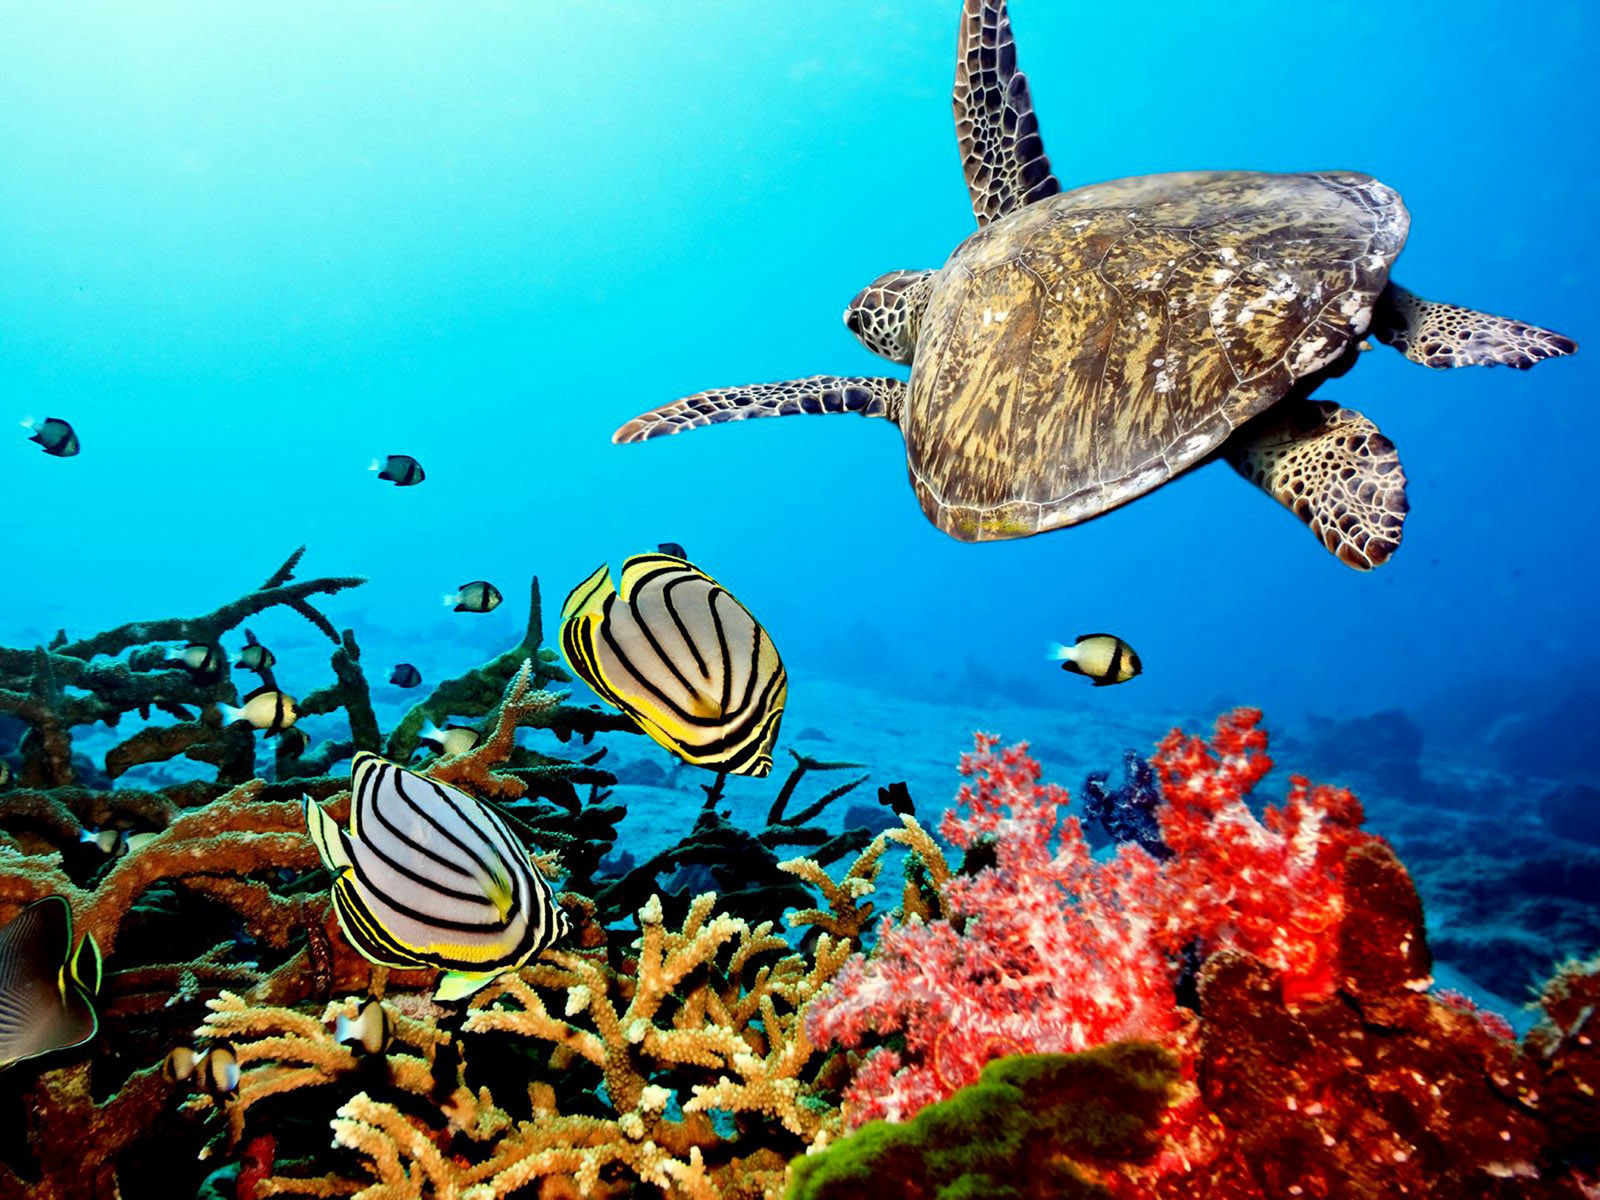 30 incredibly vibrant images of coral reefs and reef species - photo#31